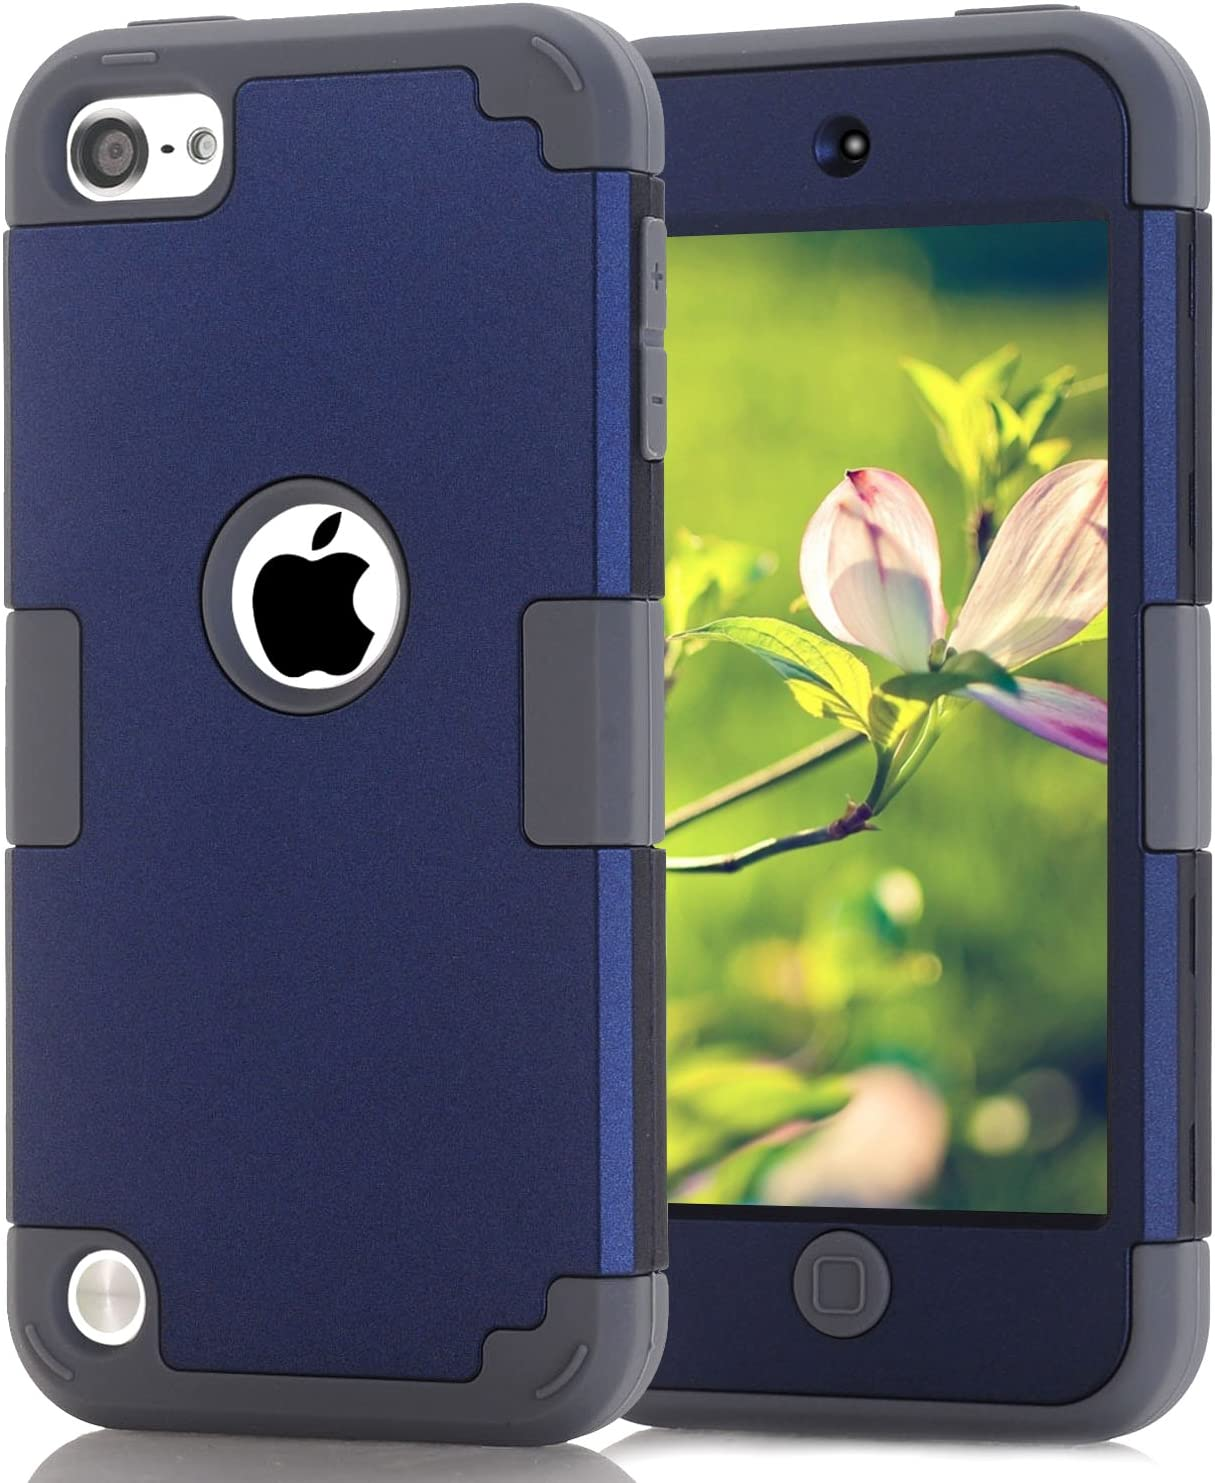 Case for iPod 7 6 5- CheerShare iPod Touch 5 6 7 Case, The Best Silicone Shockproof High Impact Layered Case + Protective Cover Case for iPod Touch 7th 6th 5th Generation(Dark Blue + Gray)